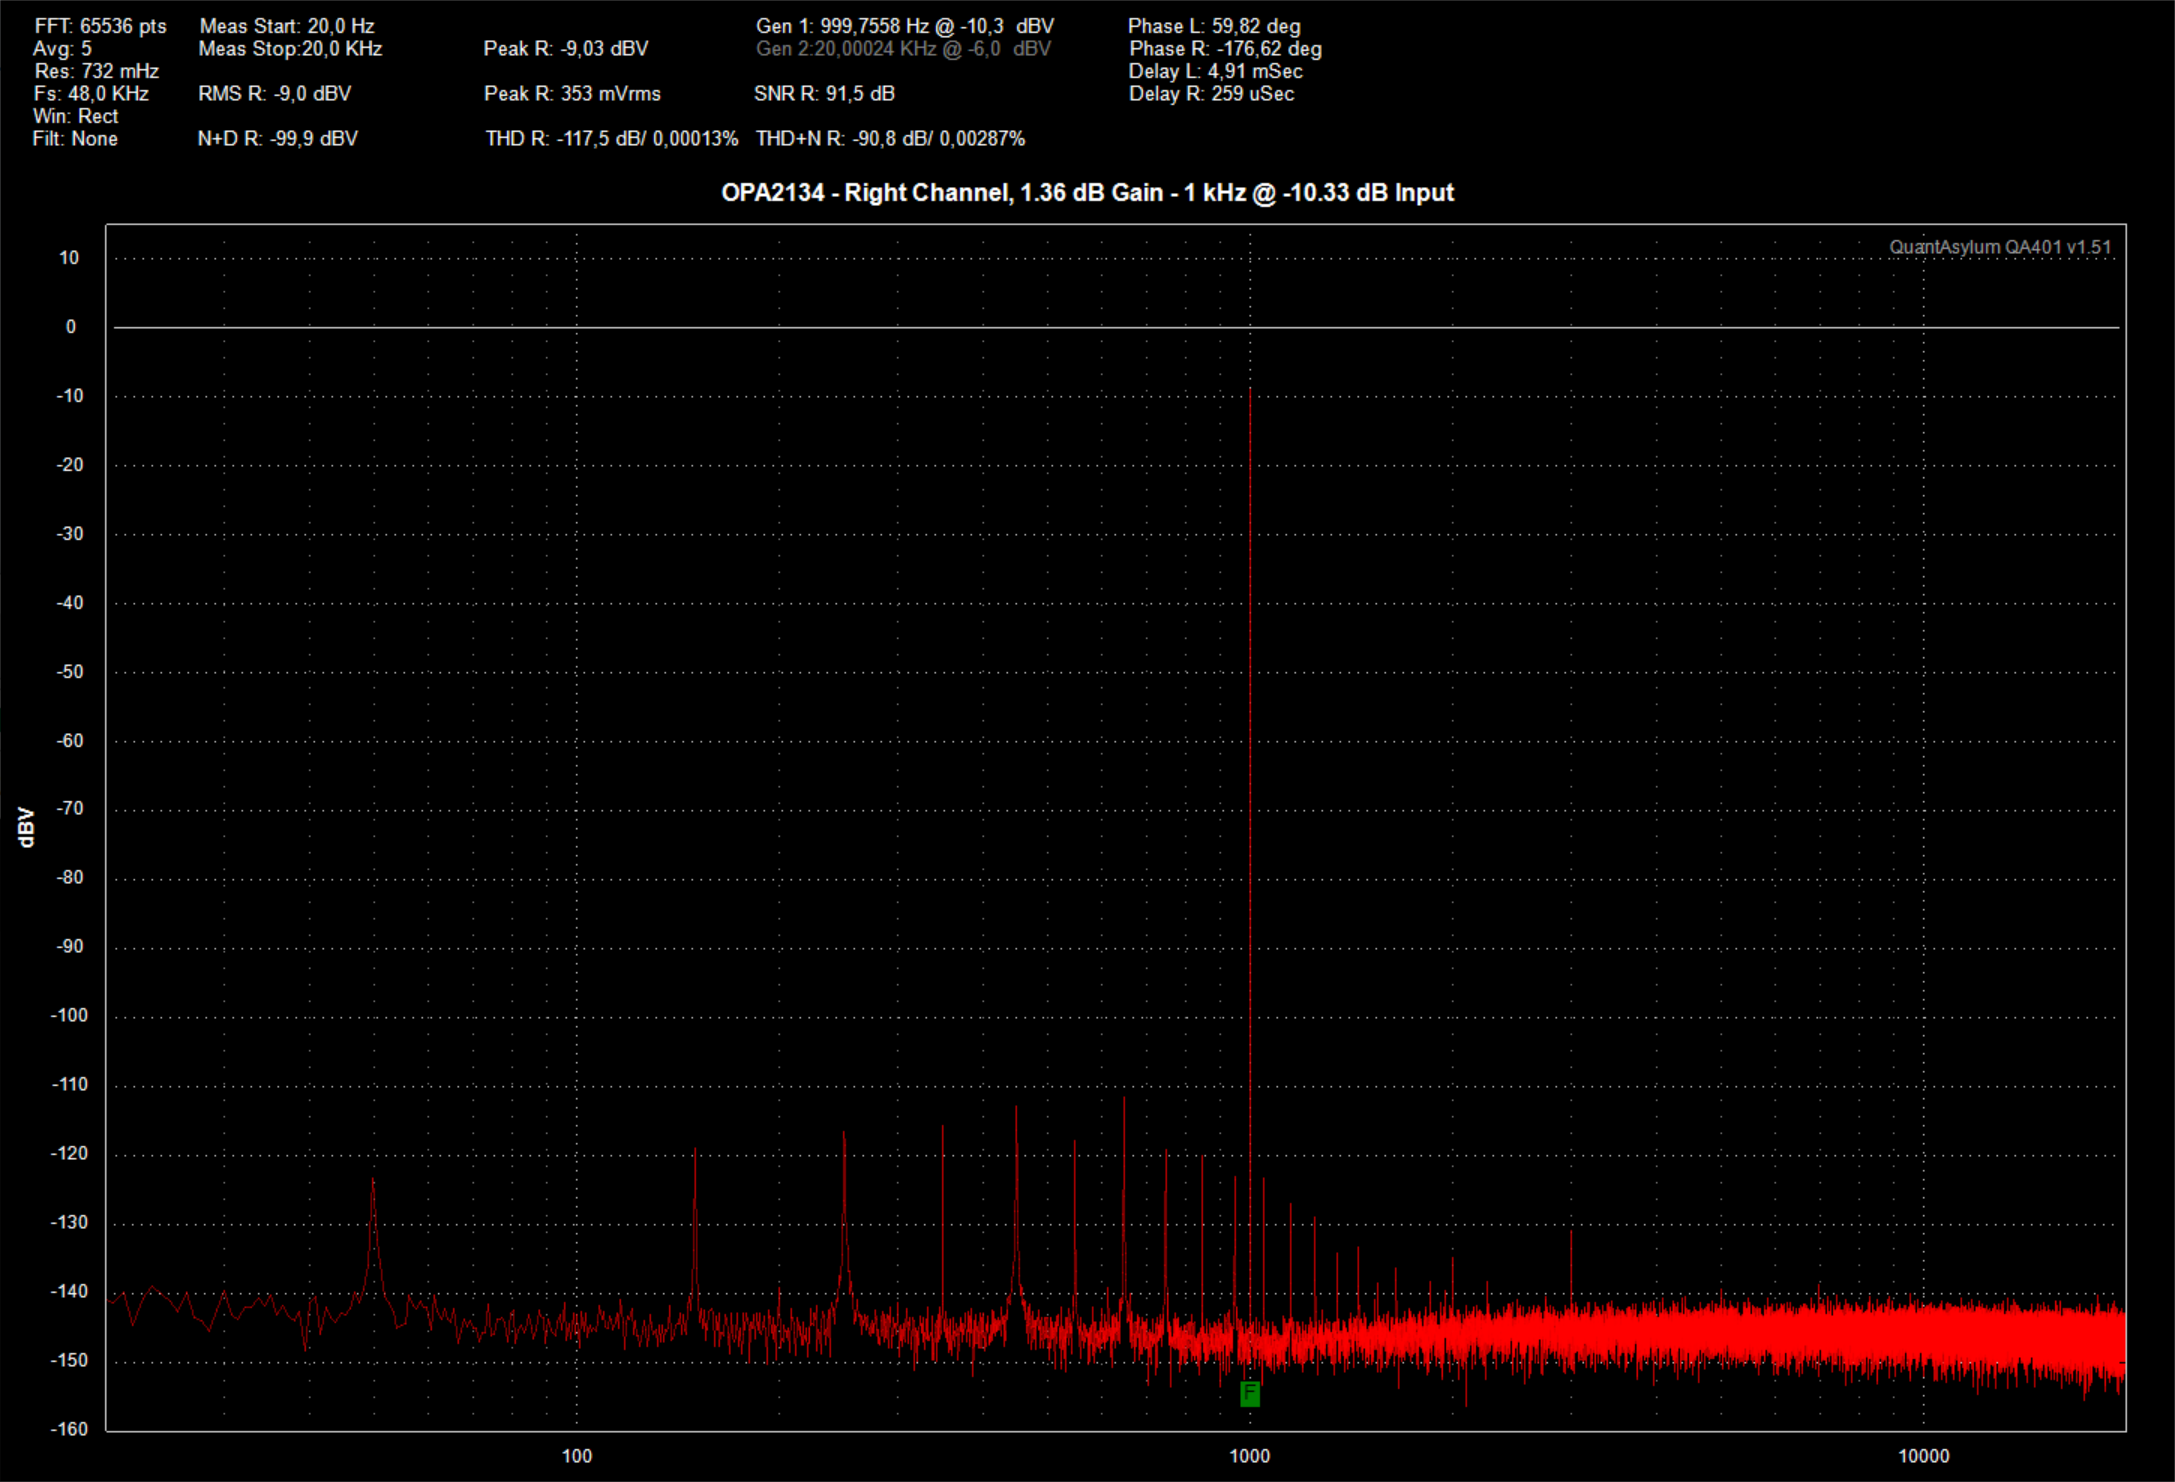 Click here for a high resolution image of the OPA2134 measurement